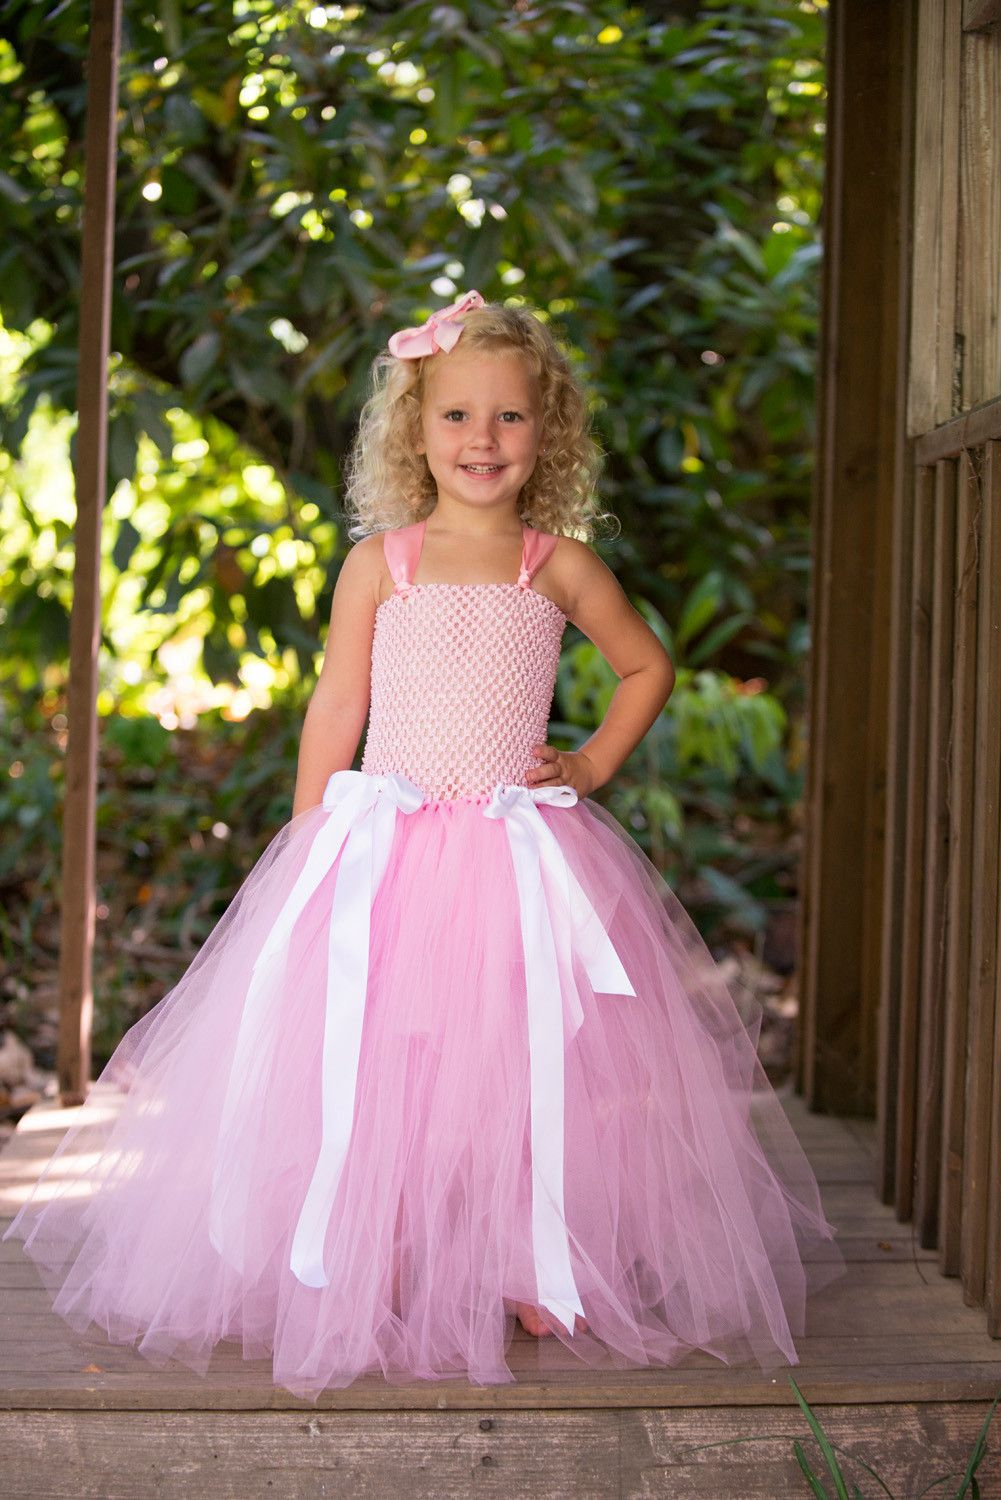 Princess Inspired Tutu Costume - Cinderella, Snow White, Rapunzel ...